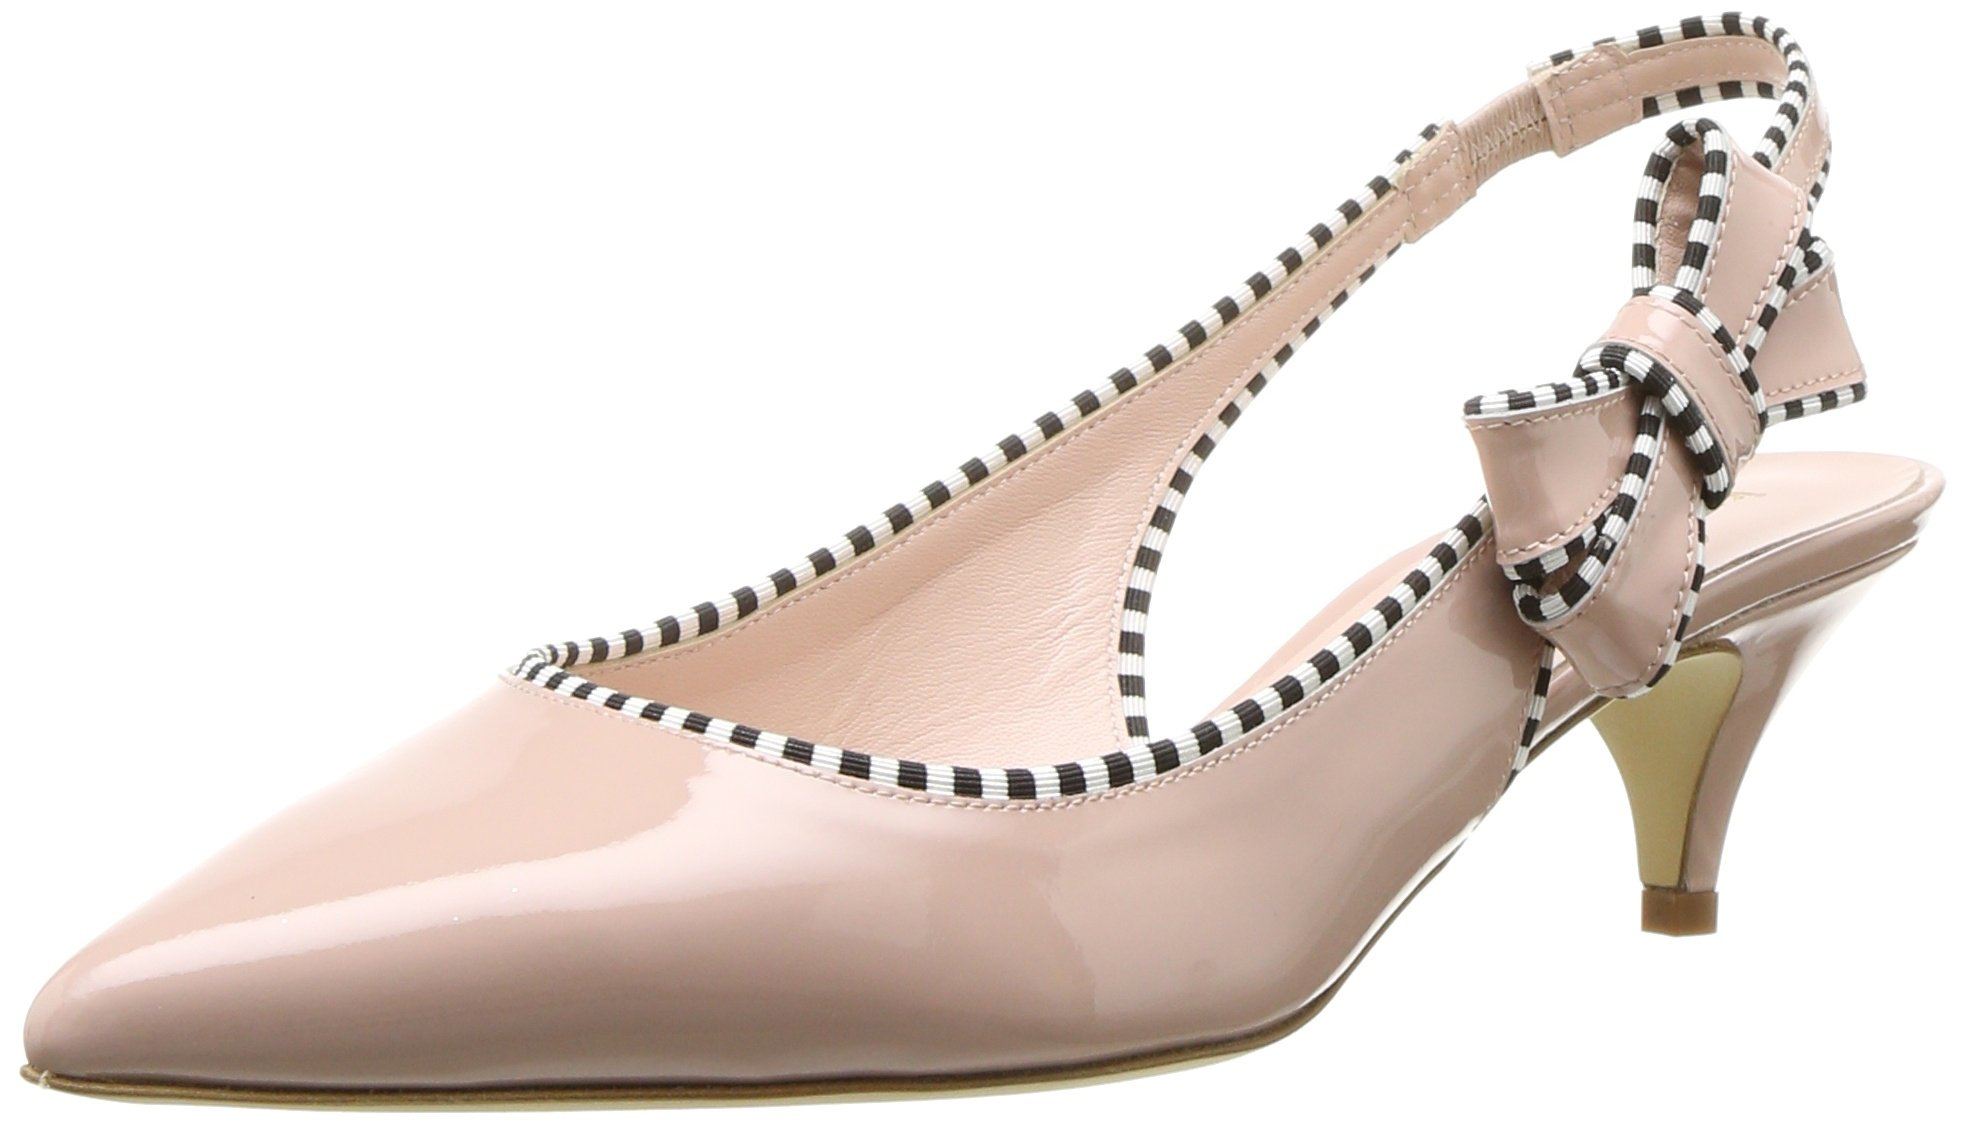 Kate Spade New York Women's Ollie Heeled Sandal, Pale Pink Patent, 6 Medium US